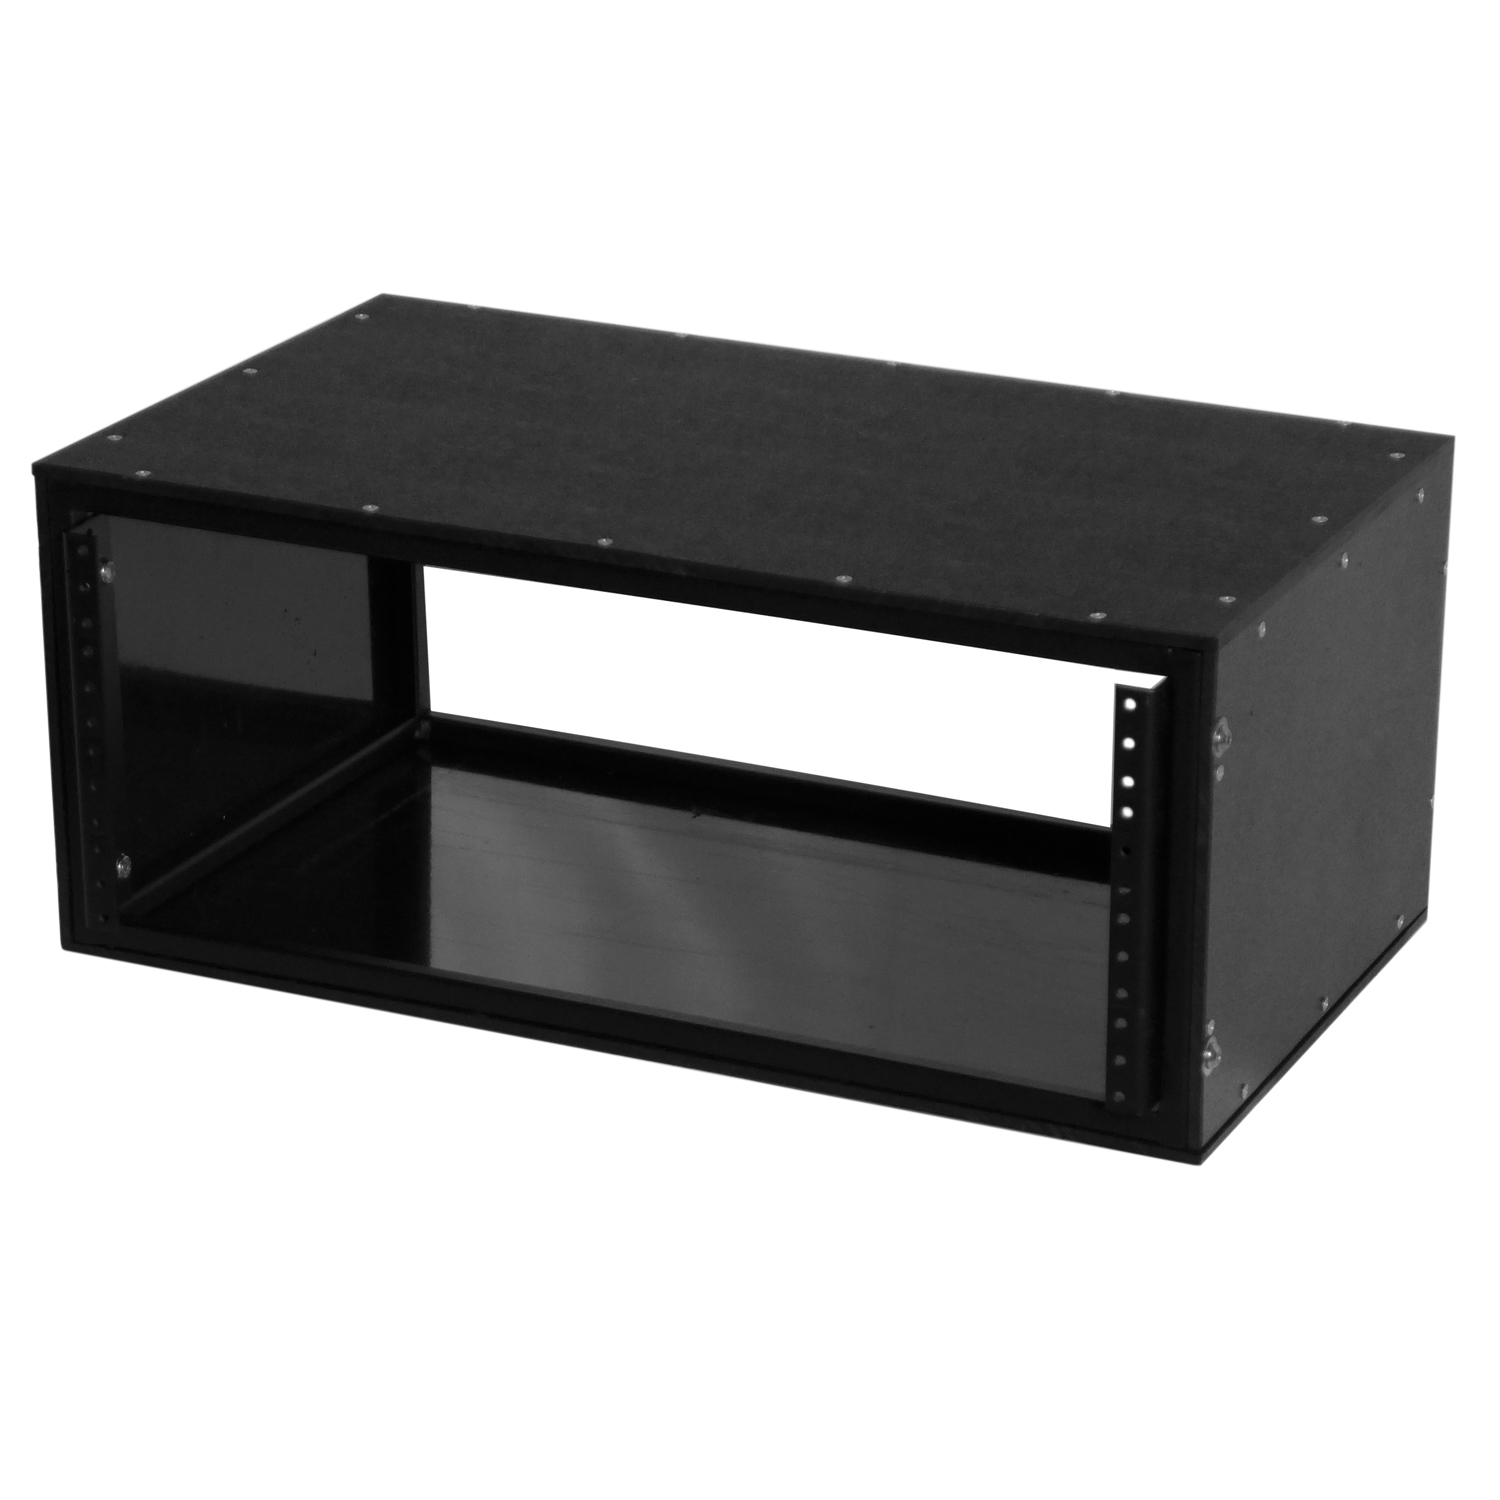 Pageantry Innovations RD-40 4U Rack Drawer